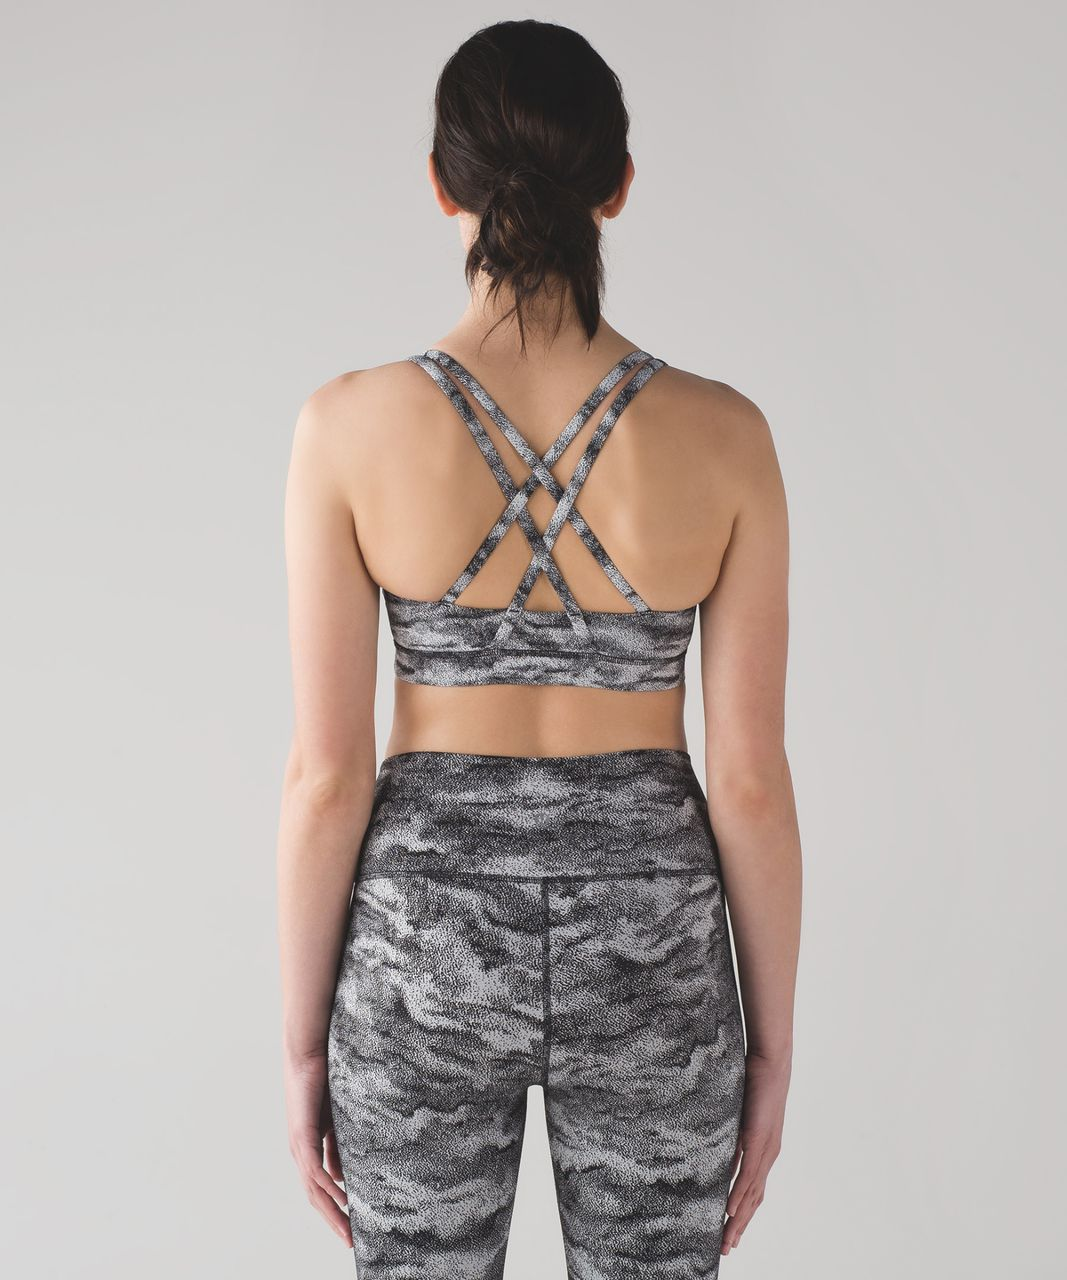 Lululemon Energy Bra - Power Luxtreme Hazy Days Black White